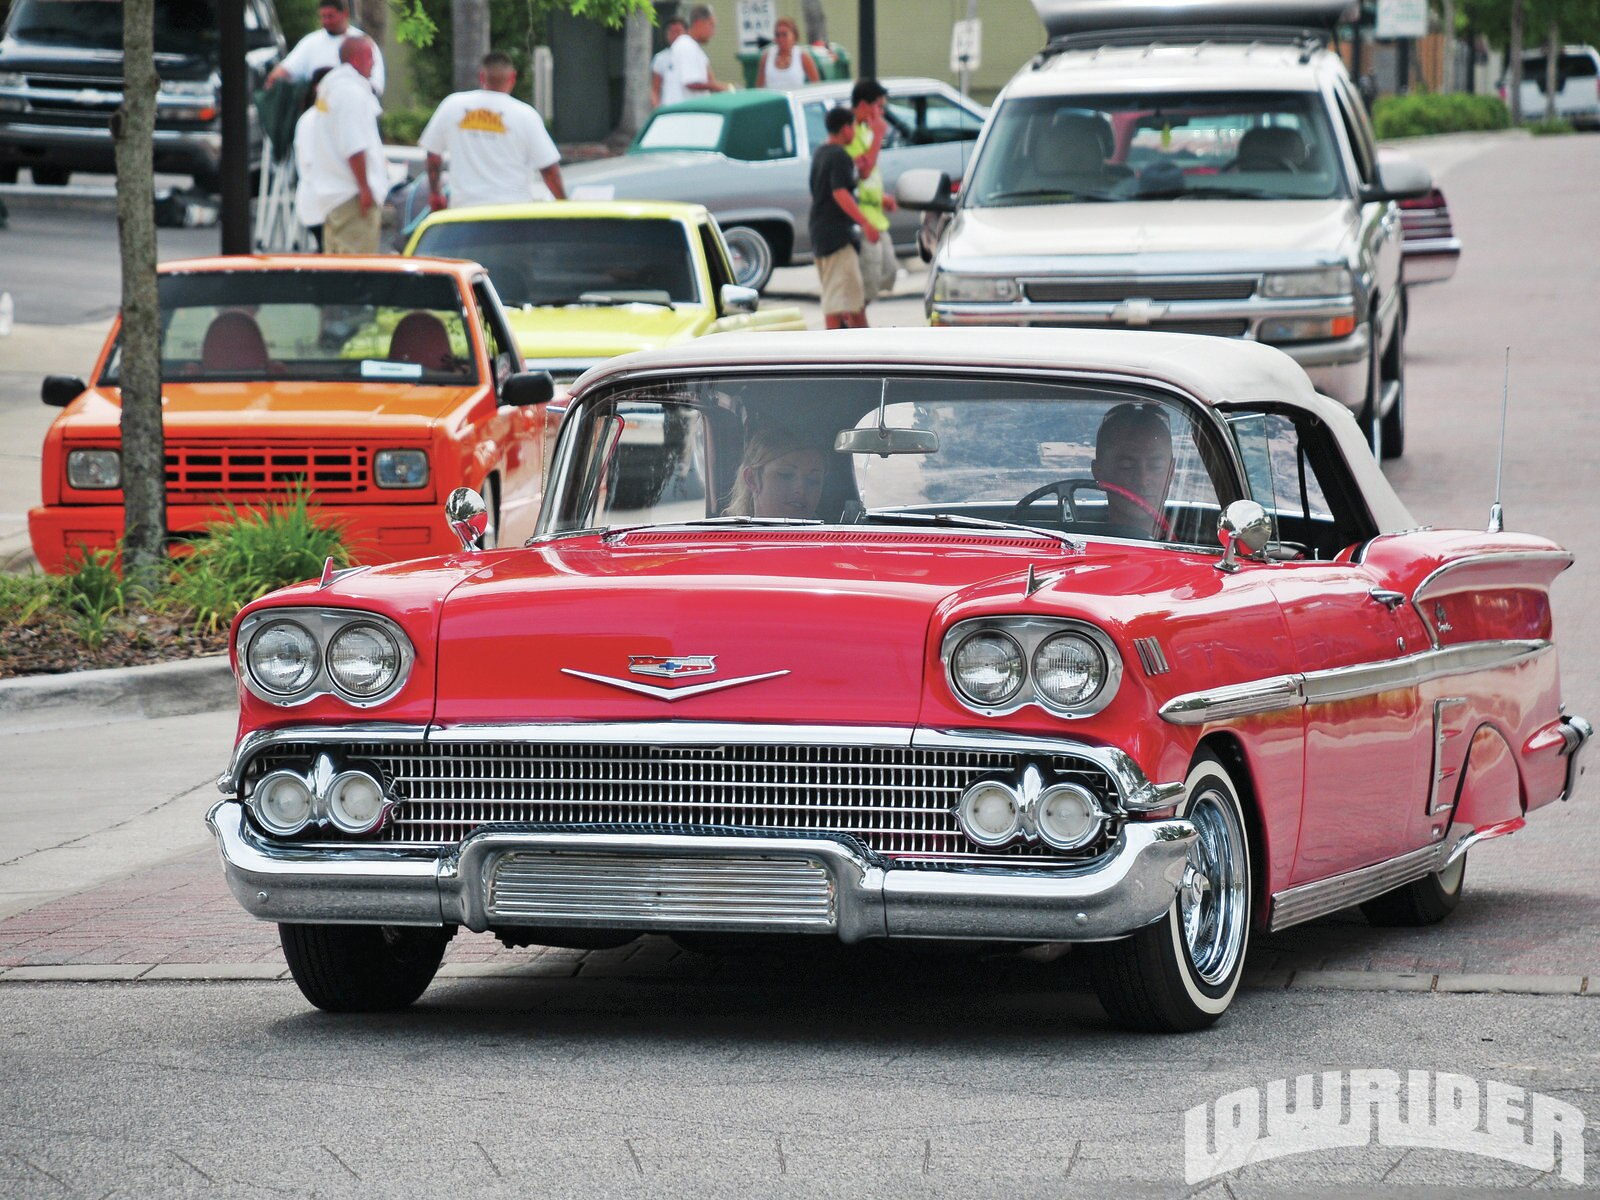 1211-lrmp-01-o-majestics-daytona-beach-chapter-picnic-show-chevy-impala1